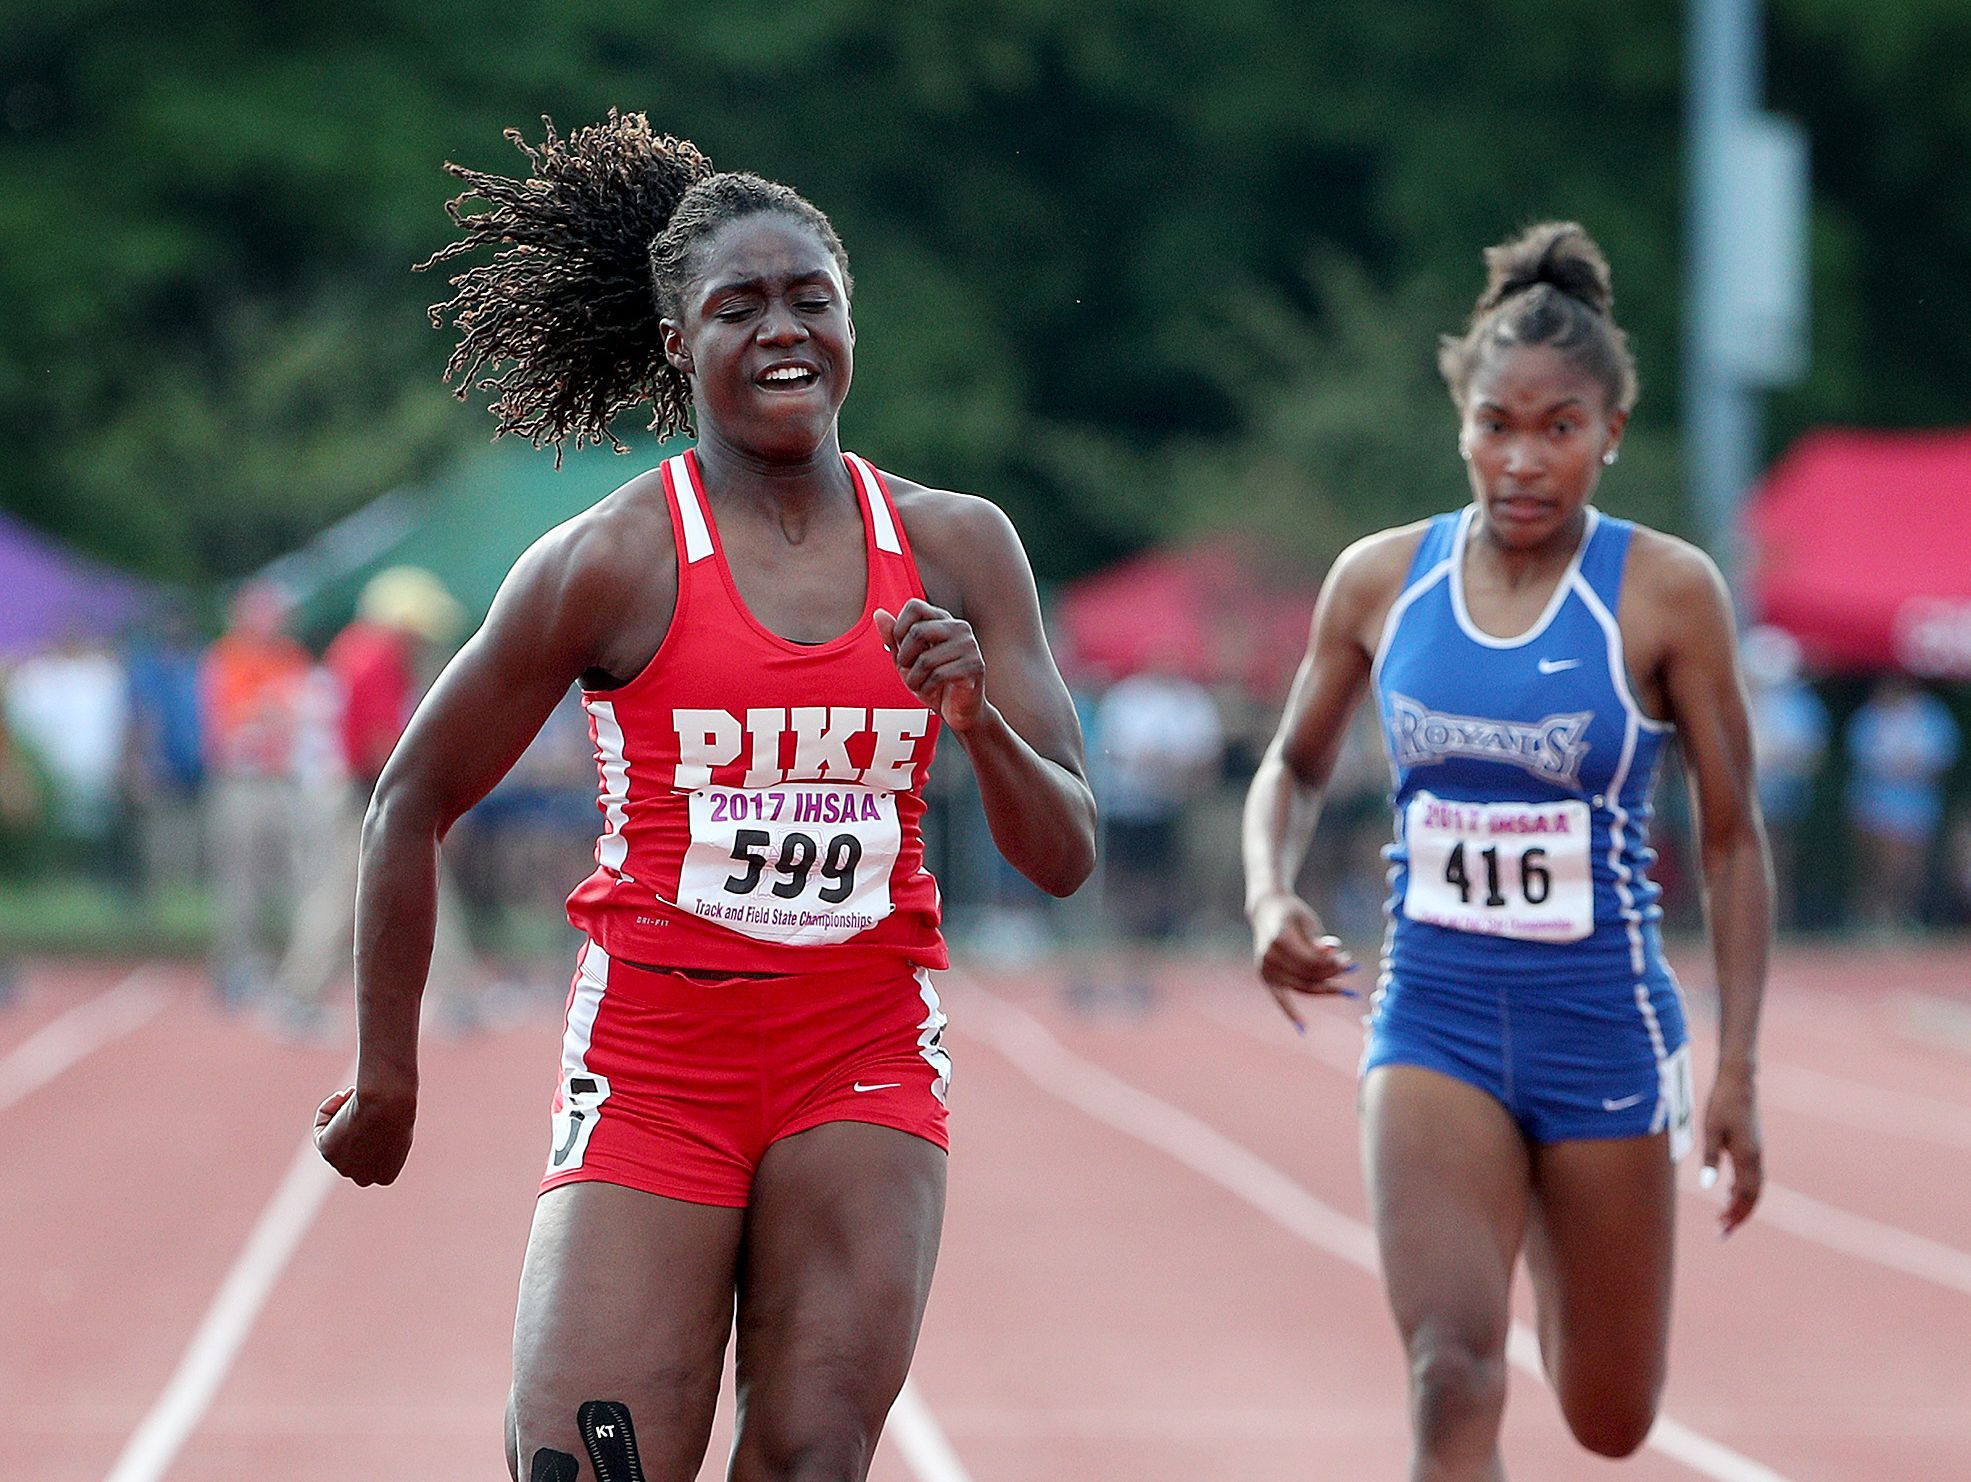 Pike's Lynna Irby finishes in first place in the 100 meter dash during the girls IHSAA State Finals at Indiana University's Robert C. Haugh Track & Field Complex in Bloomington, Saturday.